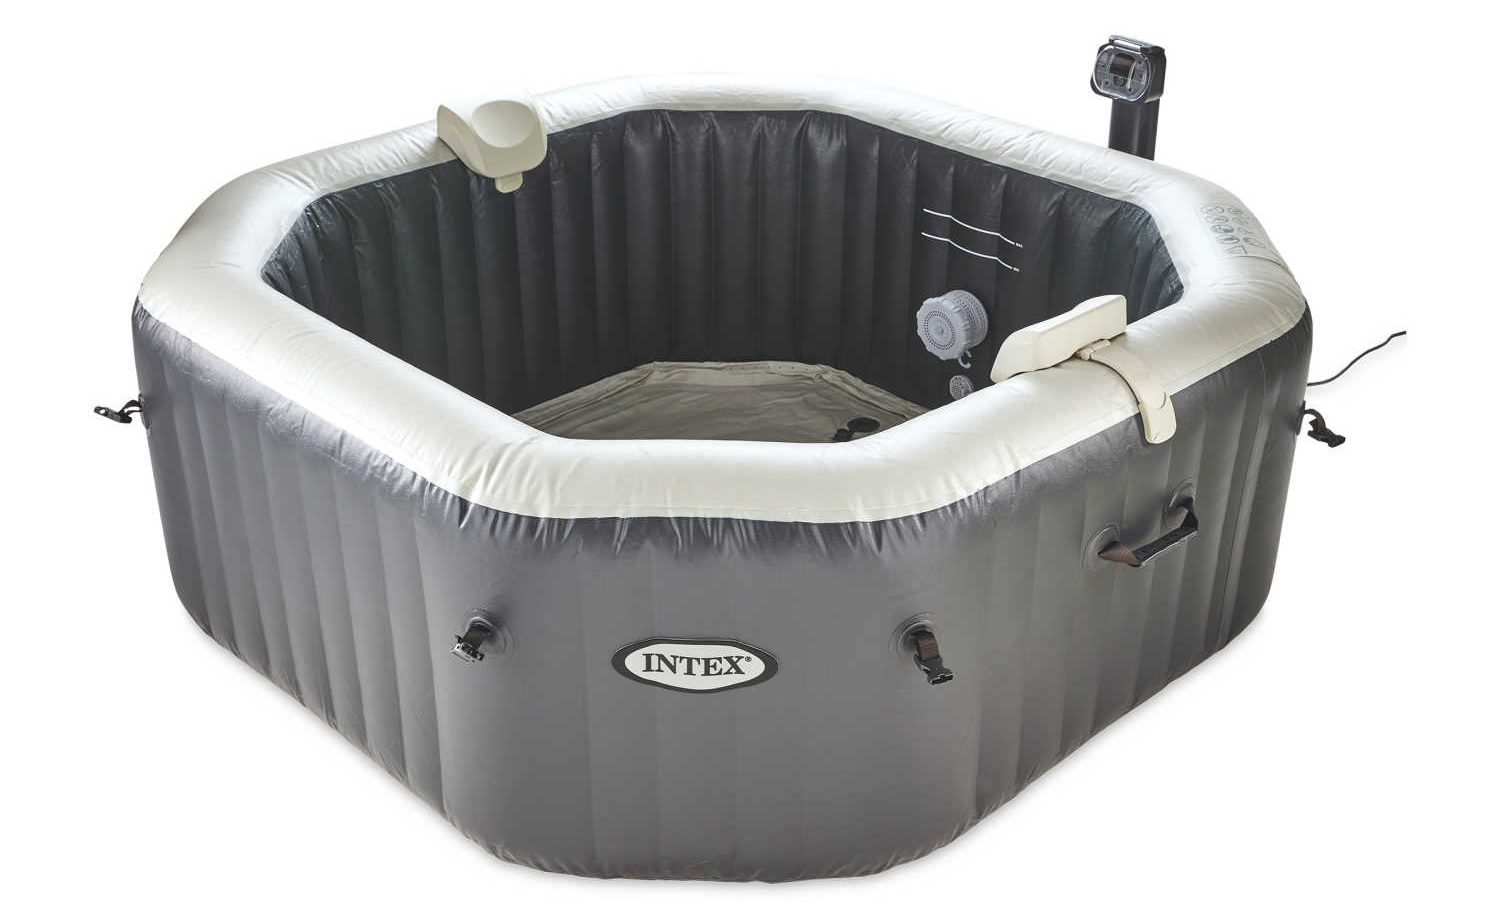 Aldi Intex Pool You Can Buy An Inflatable Hot Tub For Less Than 400 Simplemost